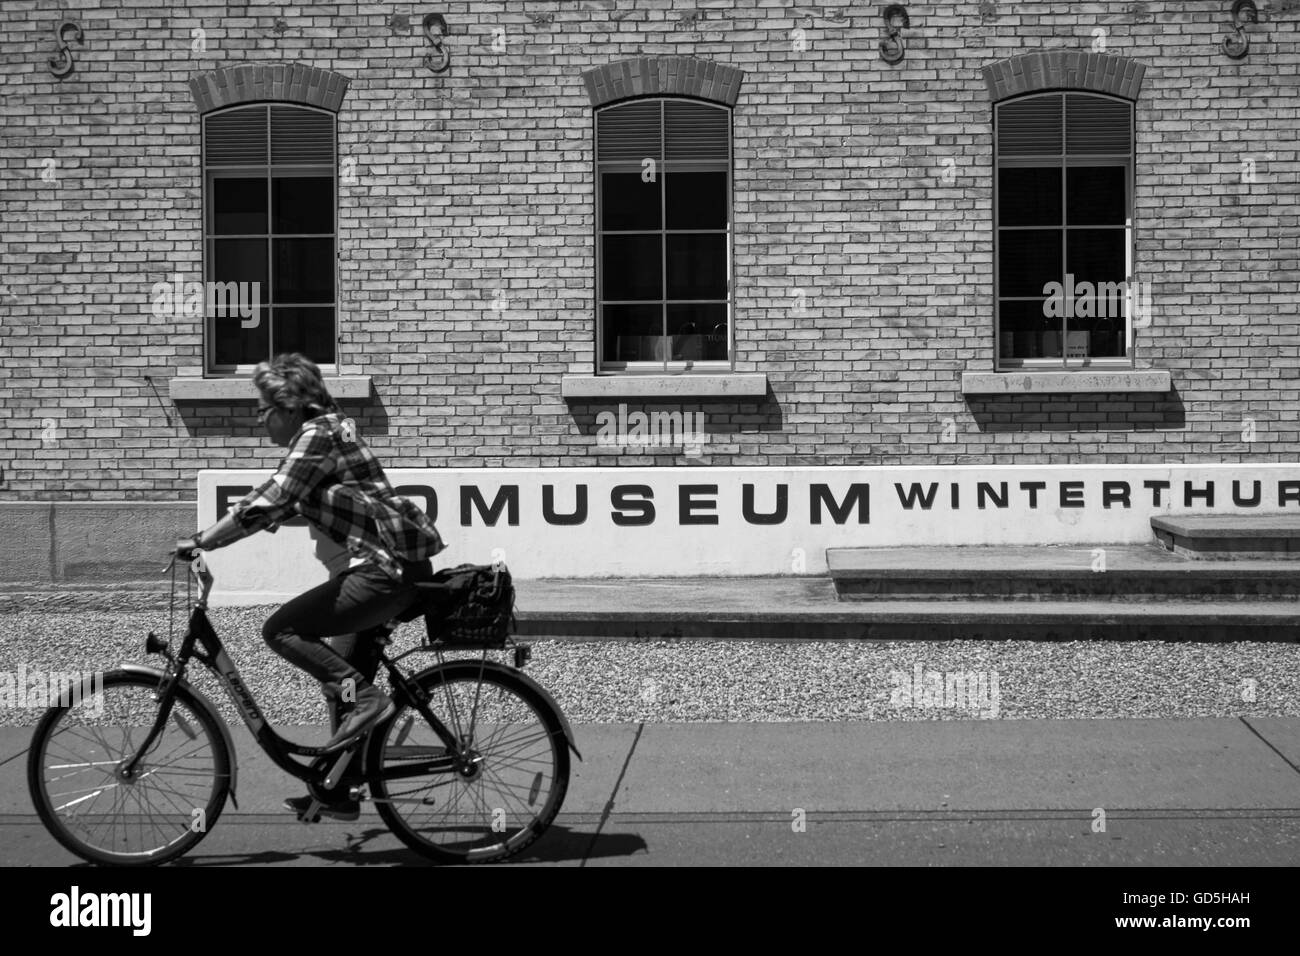 Bicycle rider in front of fotomuseum winterthur, zurich, switzerland, europe - Stock Image